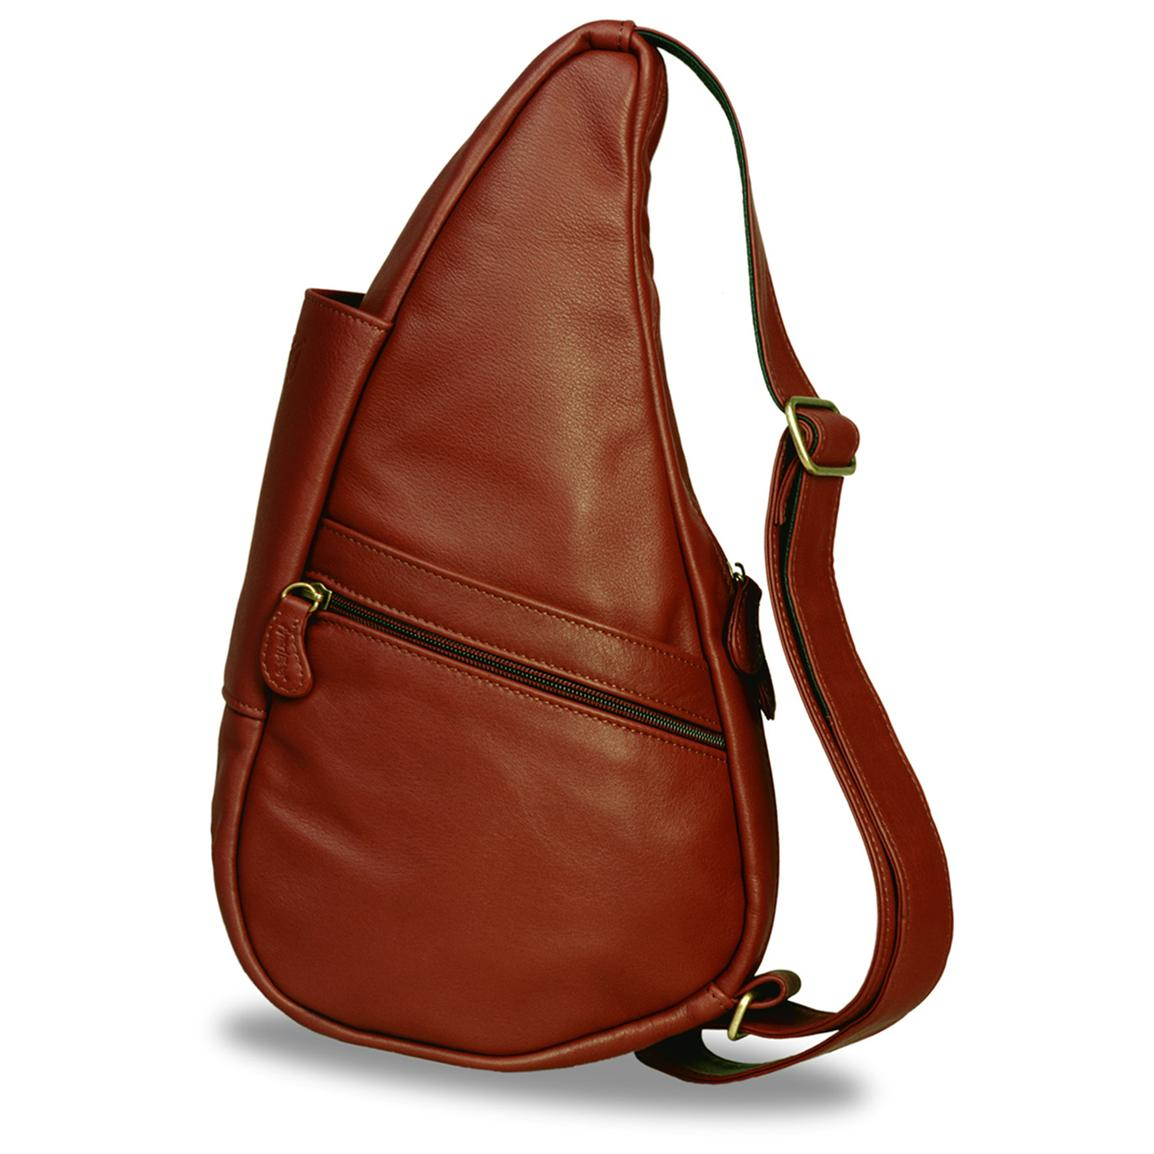 These all-purpose backpacks come in two-strap styles, both padded and unpadded, that sit comfortably on your back to prevent neck and shoulder pain. Shop backpack purses in different shapes, sizes and colors; and find a bag that styles well with casual jeans or dress for school or a weekend getaway.